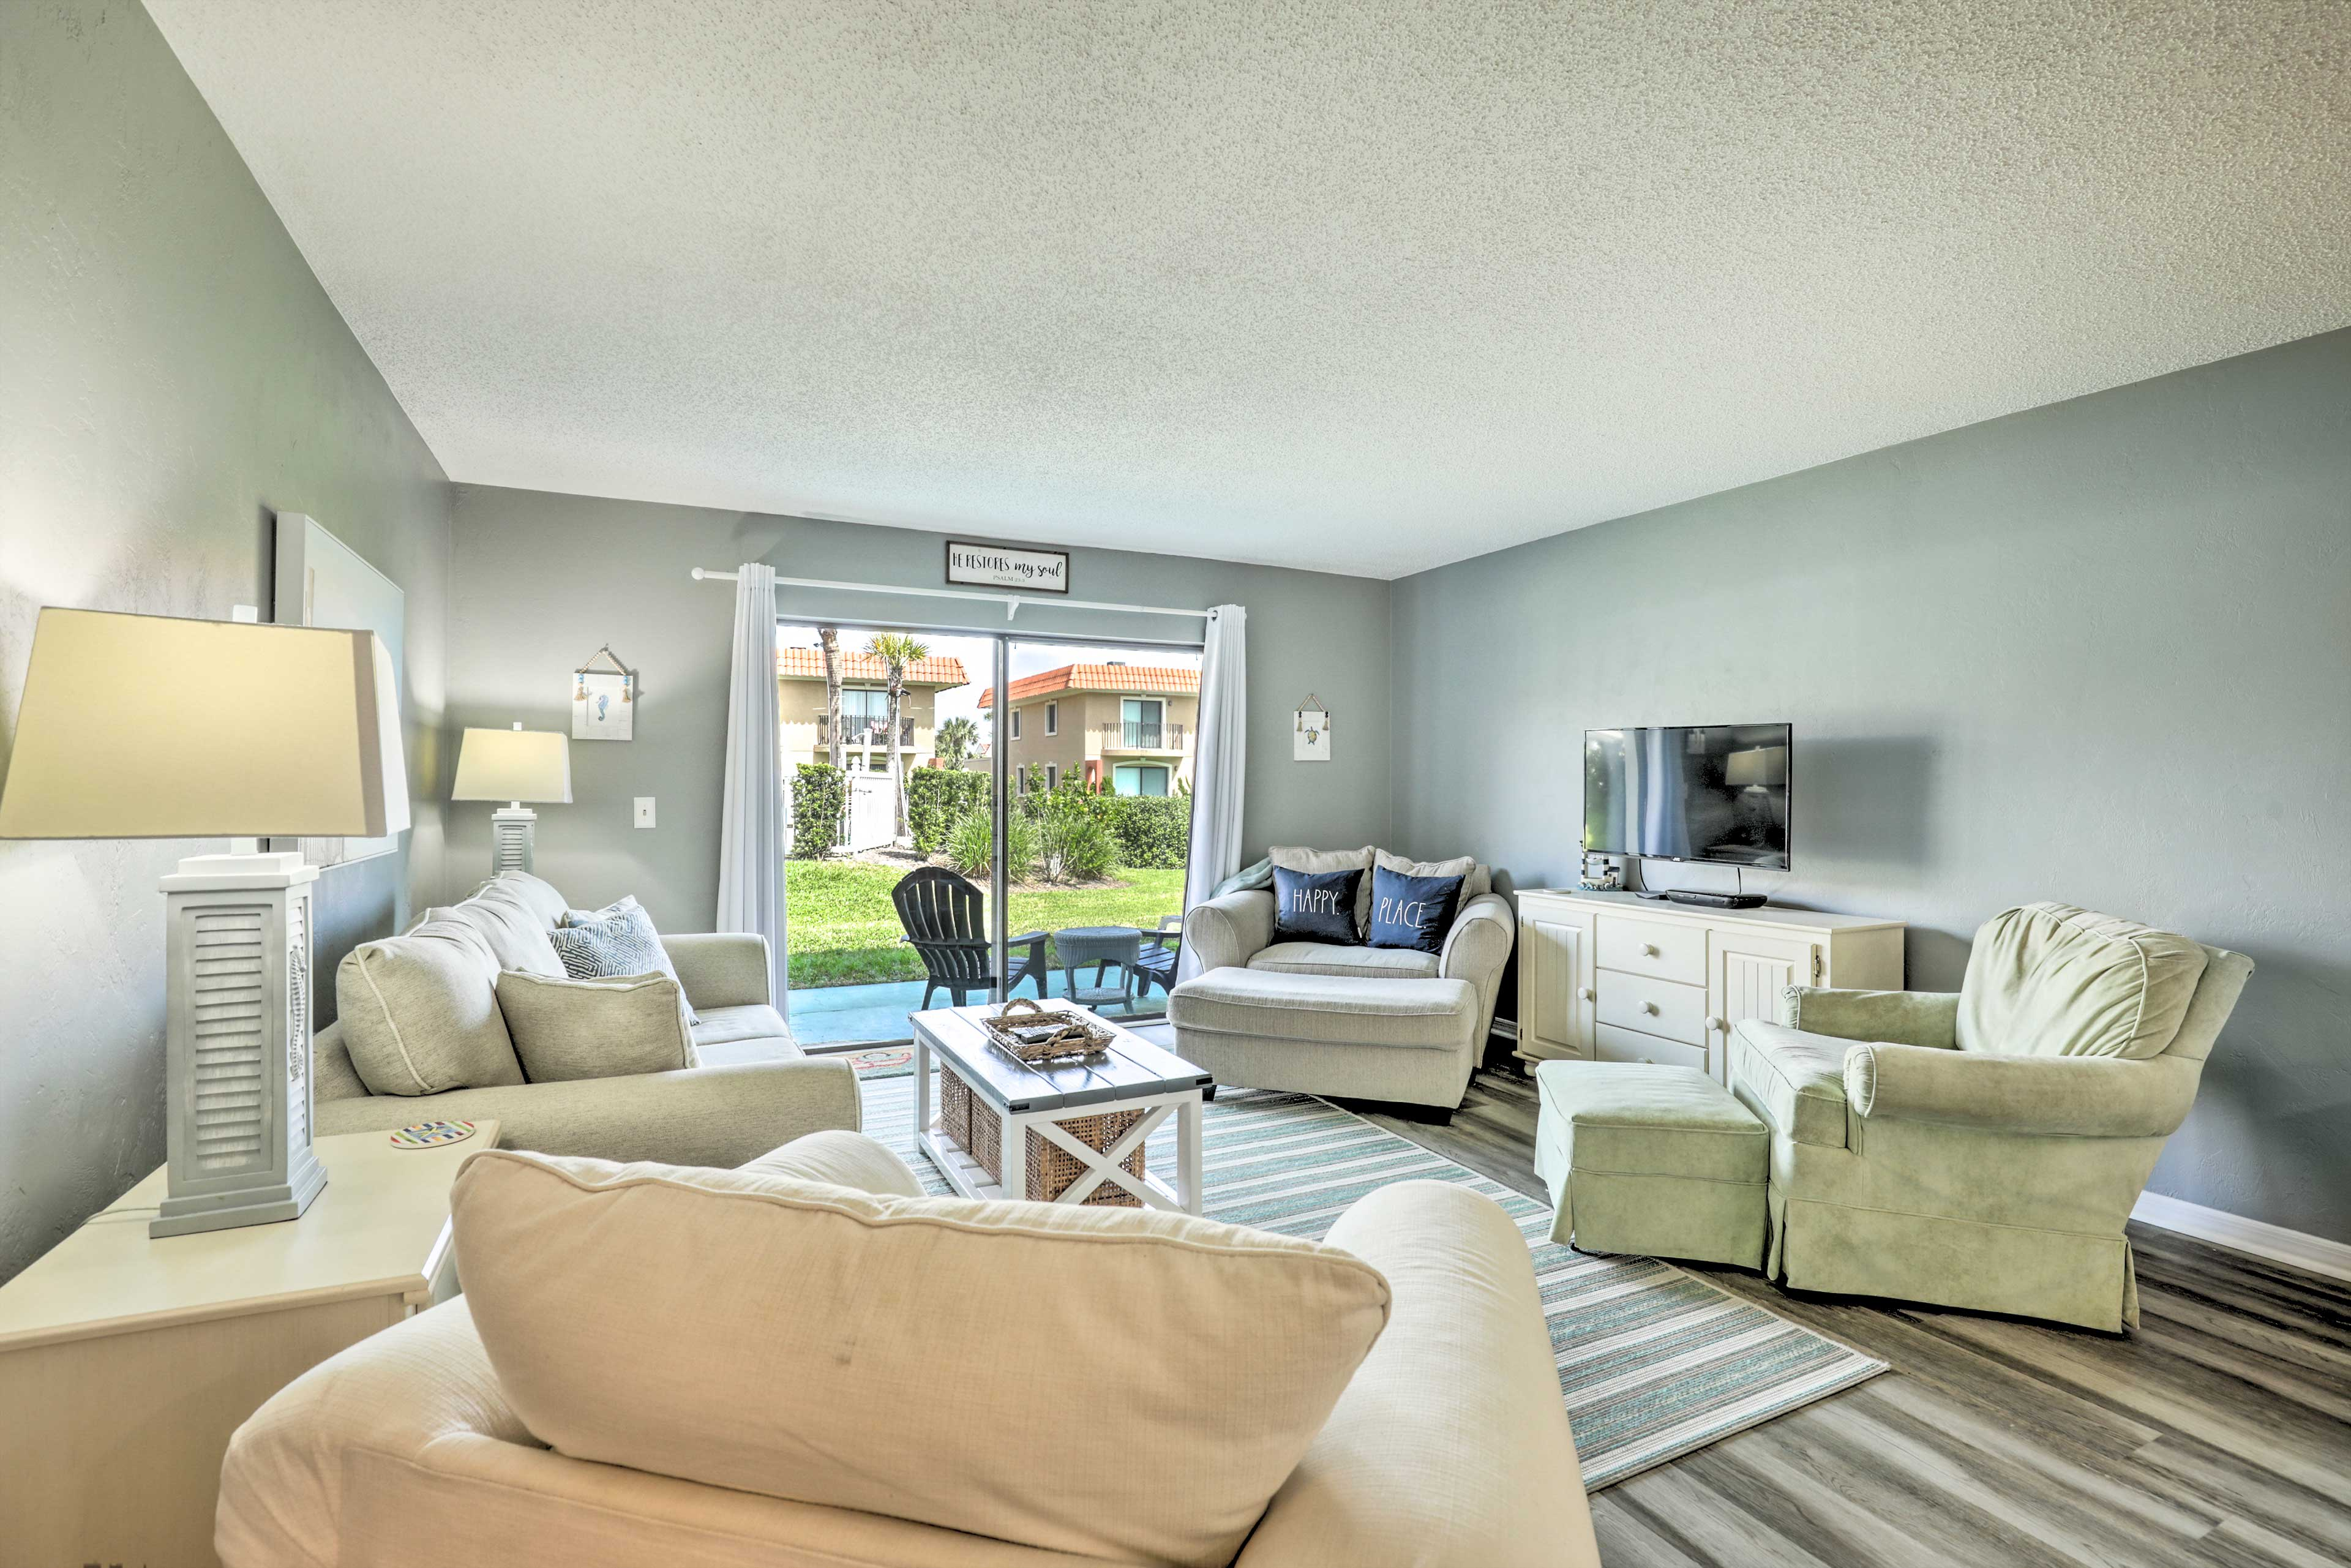 Call St. Augustine home for a short or long stay at this charming townhome.